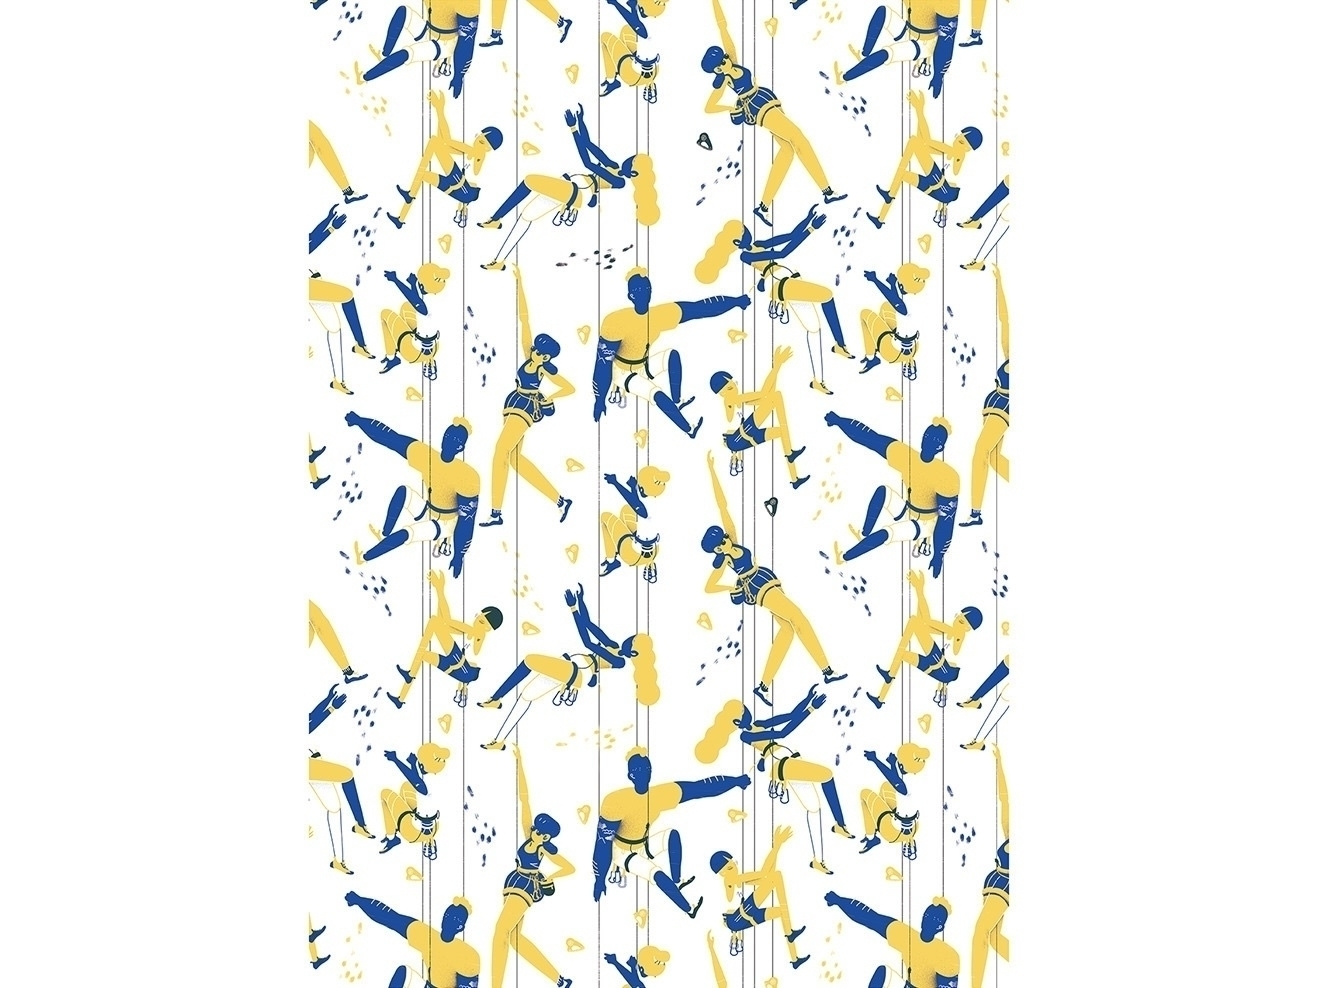 Closing climber series pattern  - alvz_motion | ello